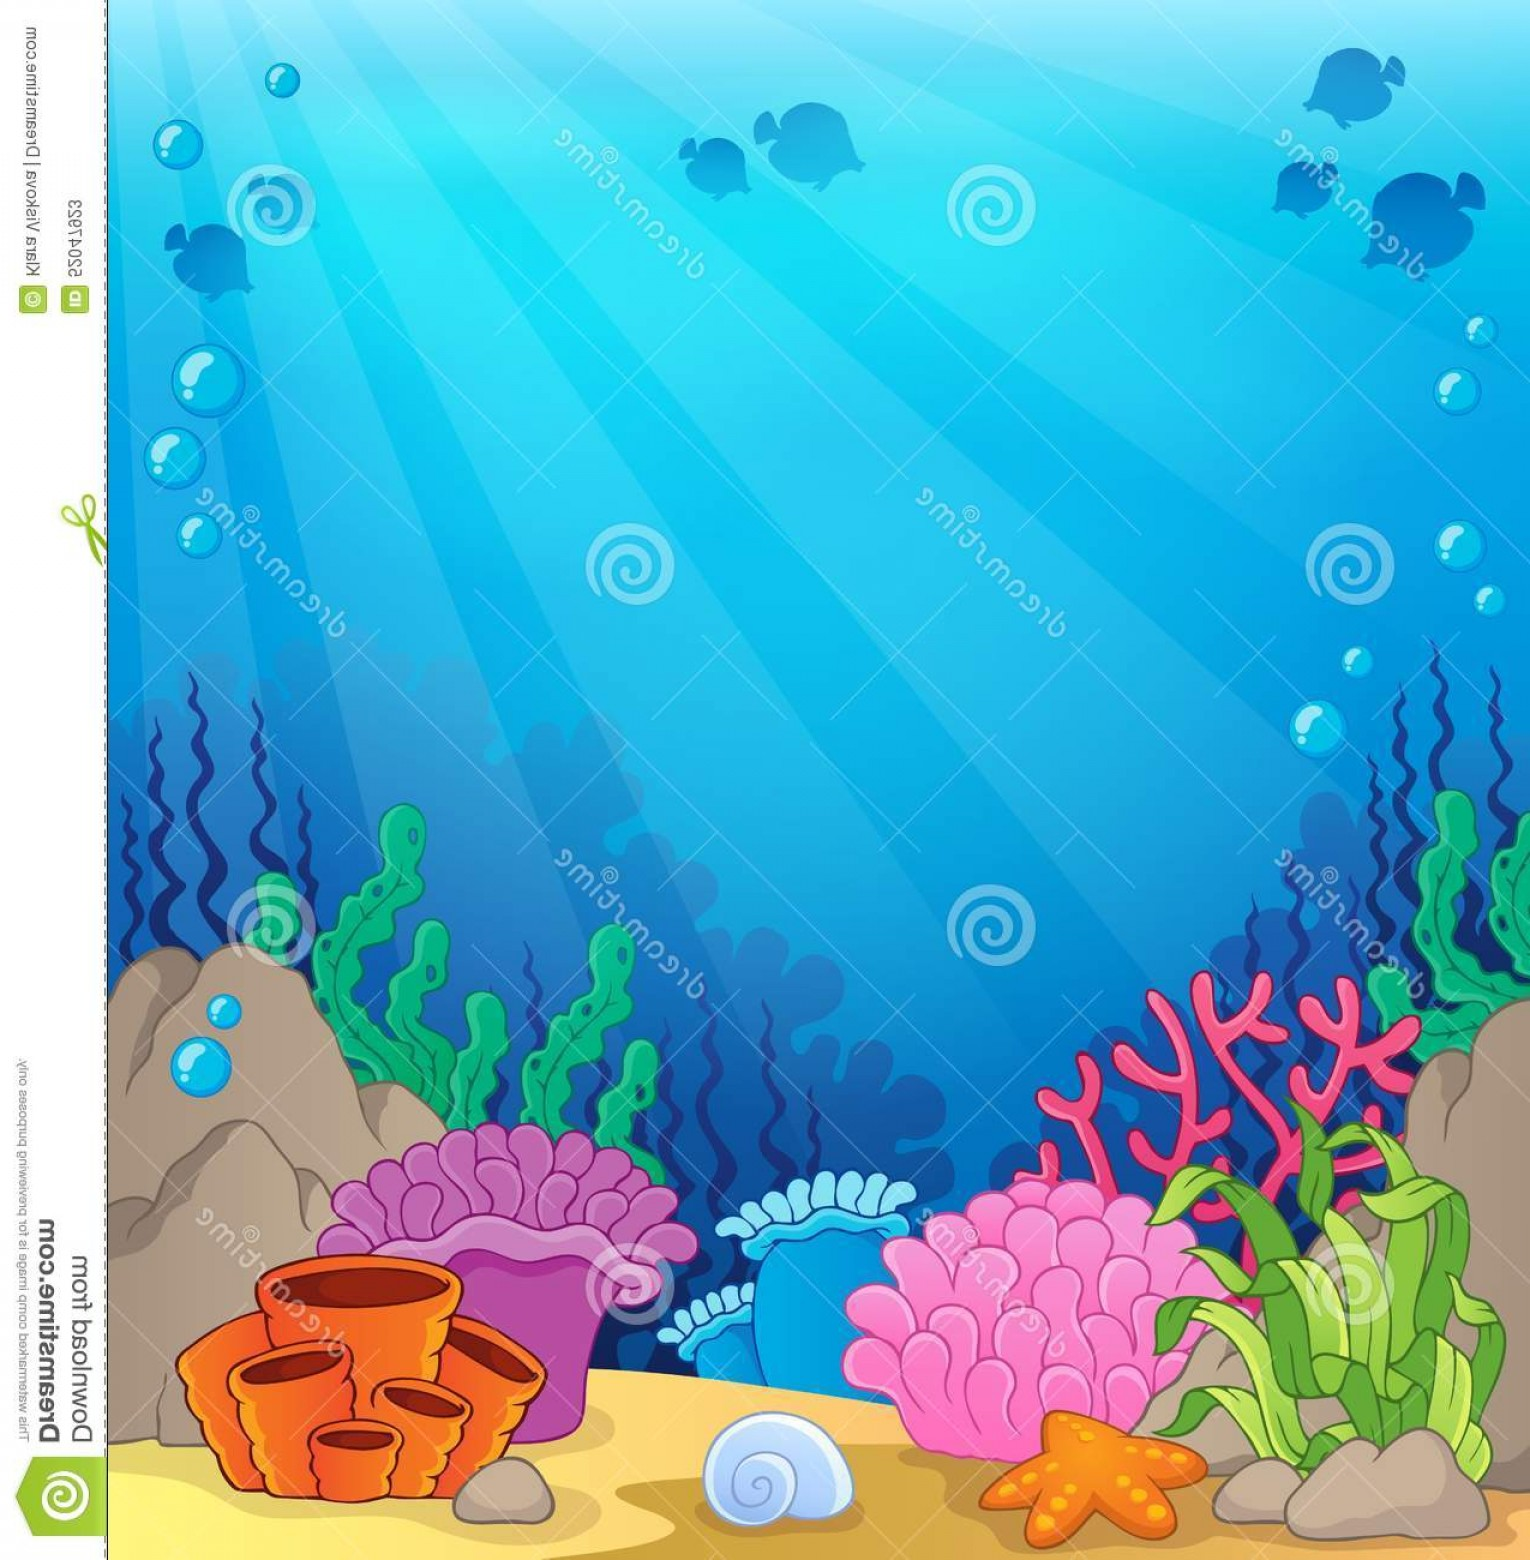 Underwater Sea Vector Art: Stock Illustration Ocean Underwater Theme Background Eps Vector Illustration Image